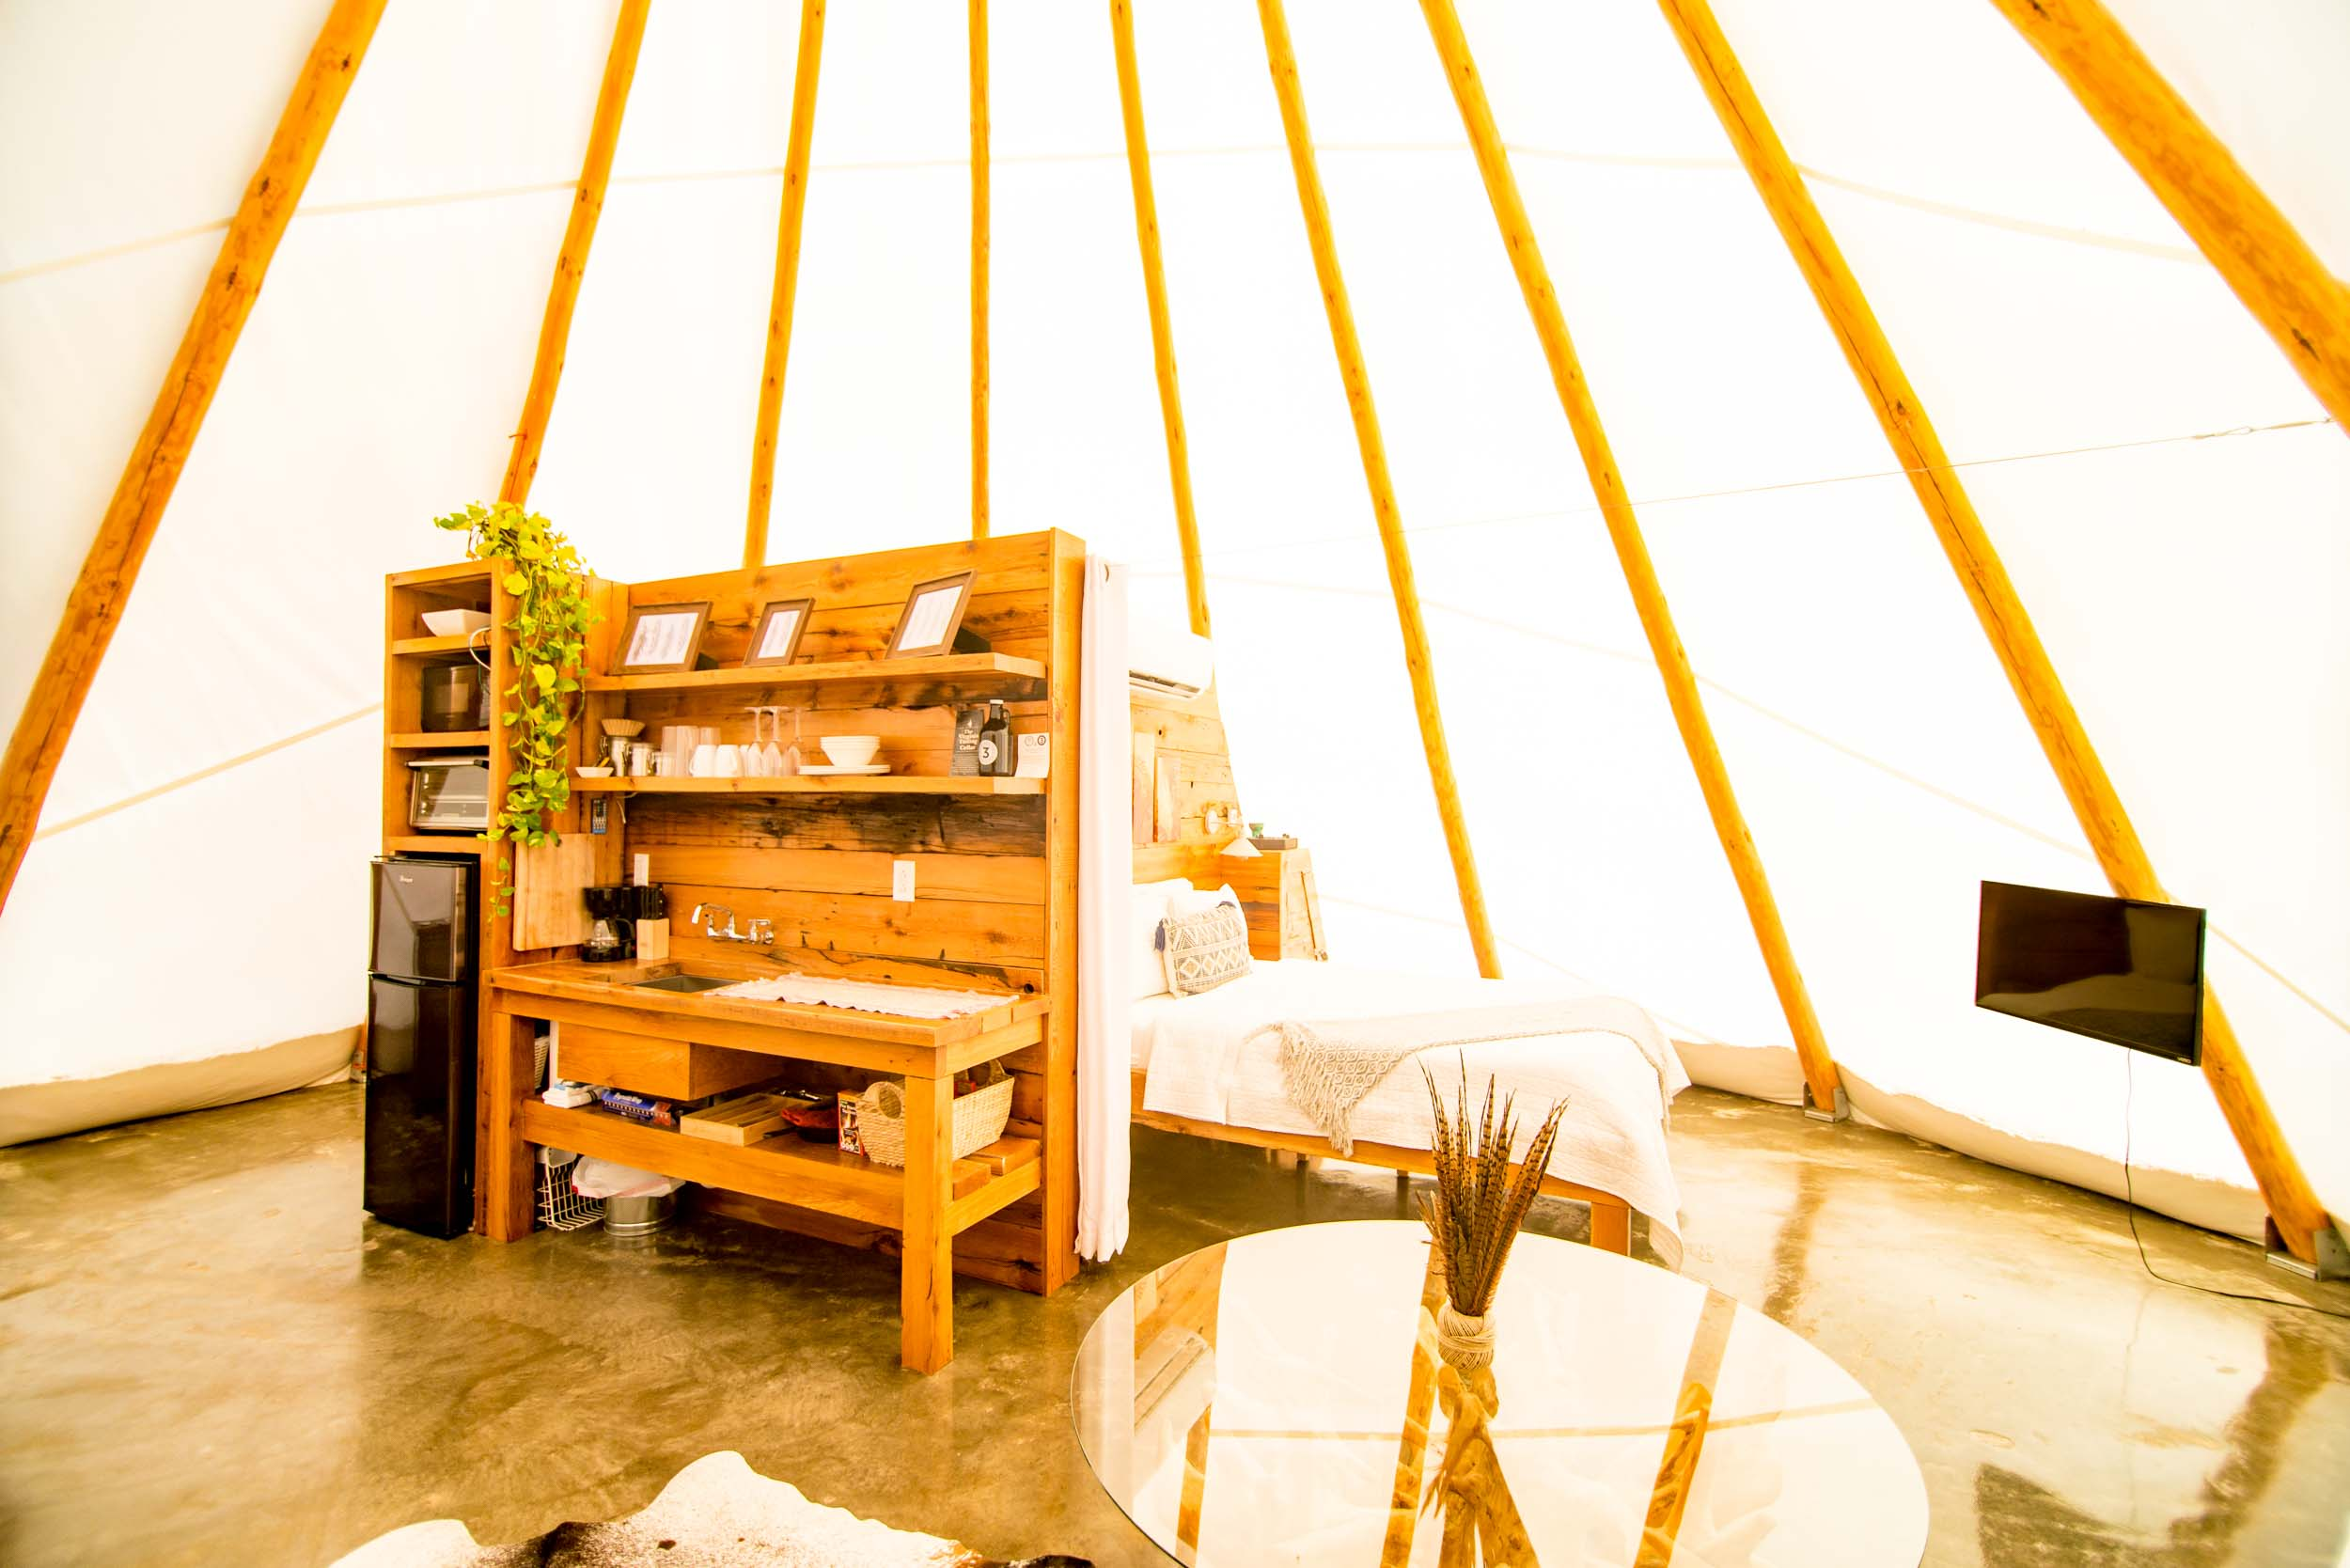 architecture+photographer+tipis+interiors+photography+airbnb+photo-7.jpg